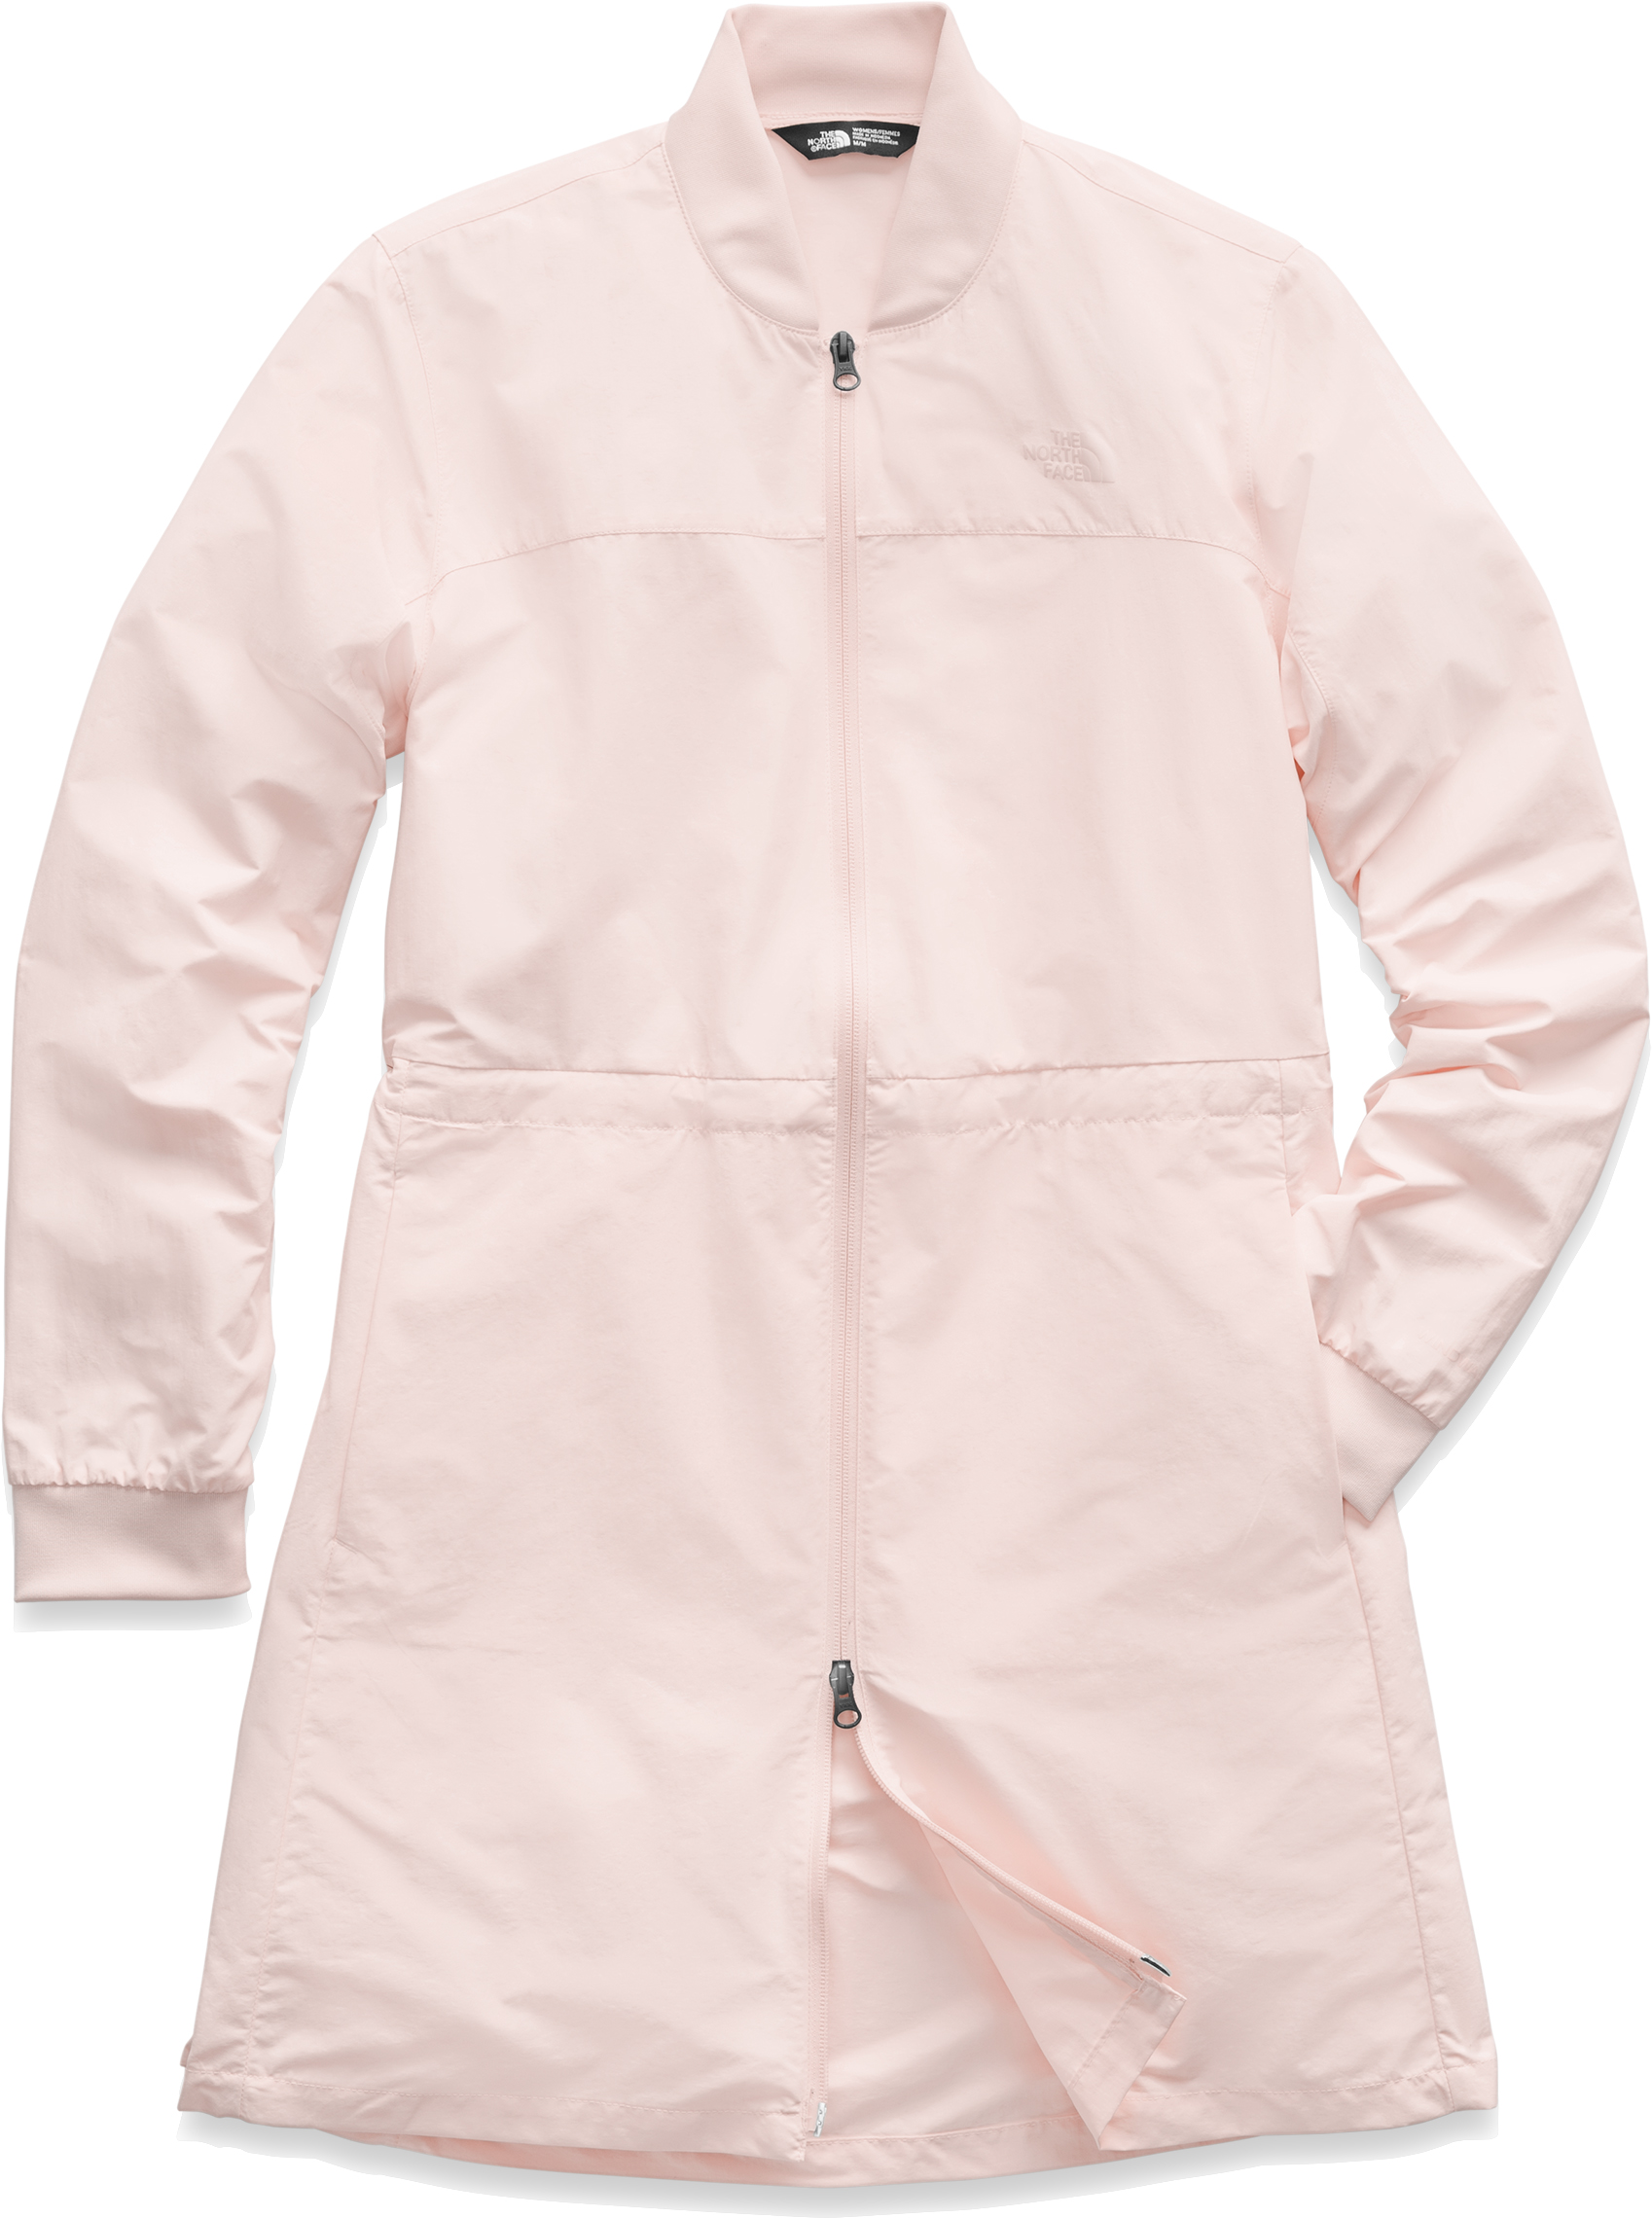 61f19cece The North Face Flybae Long Bomber - Women's